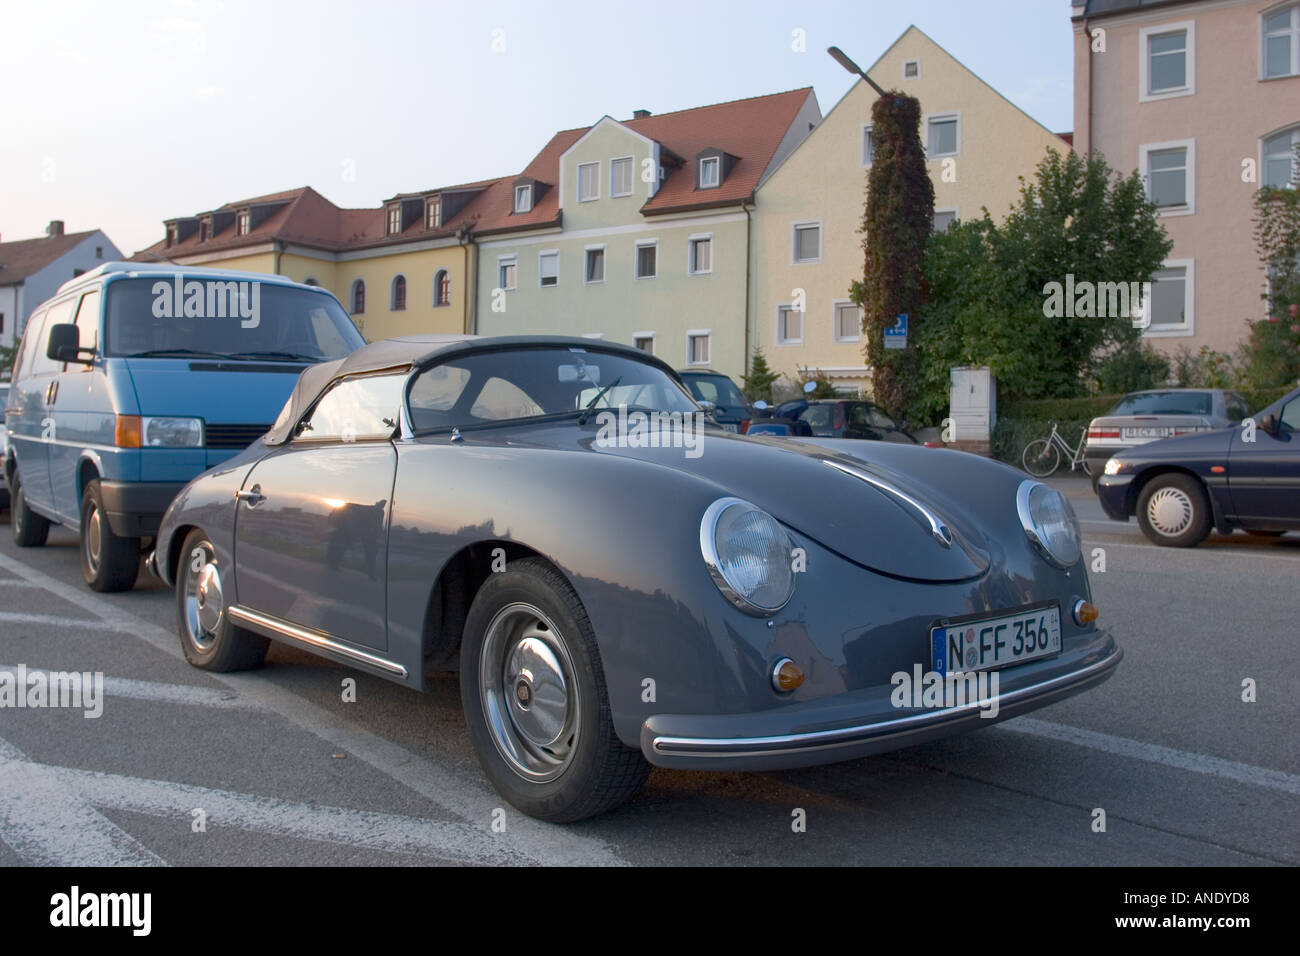 a porsche 356 speedster sports car parked in the ancient city of stock photo royalty free image. Black Bedroom Furniture Sets. Home Design Ideas